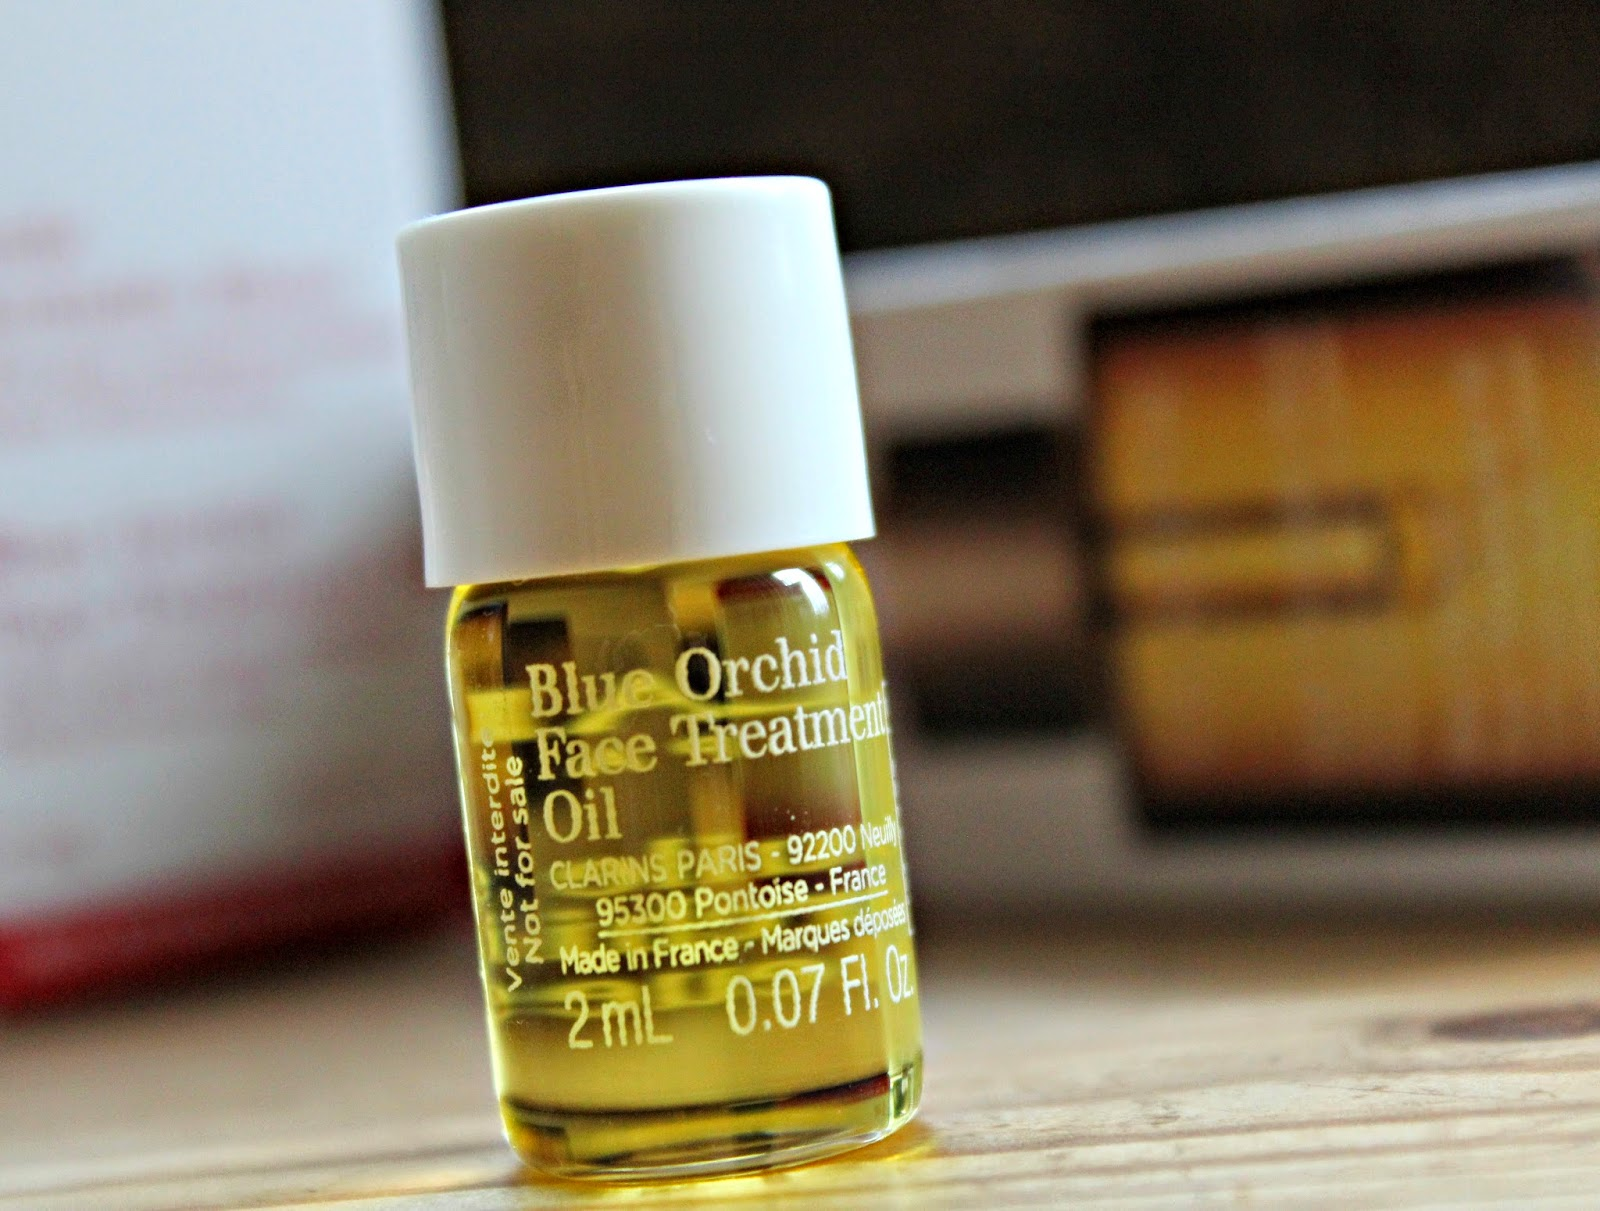 A picture of the Clarins Blue Orchid Face Treatment Oil